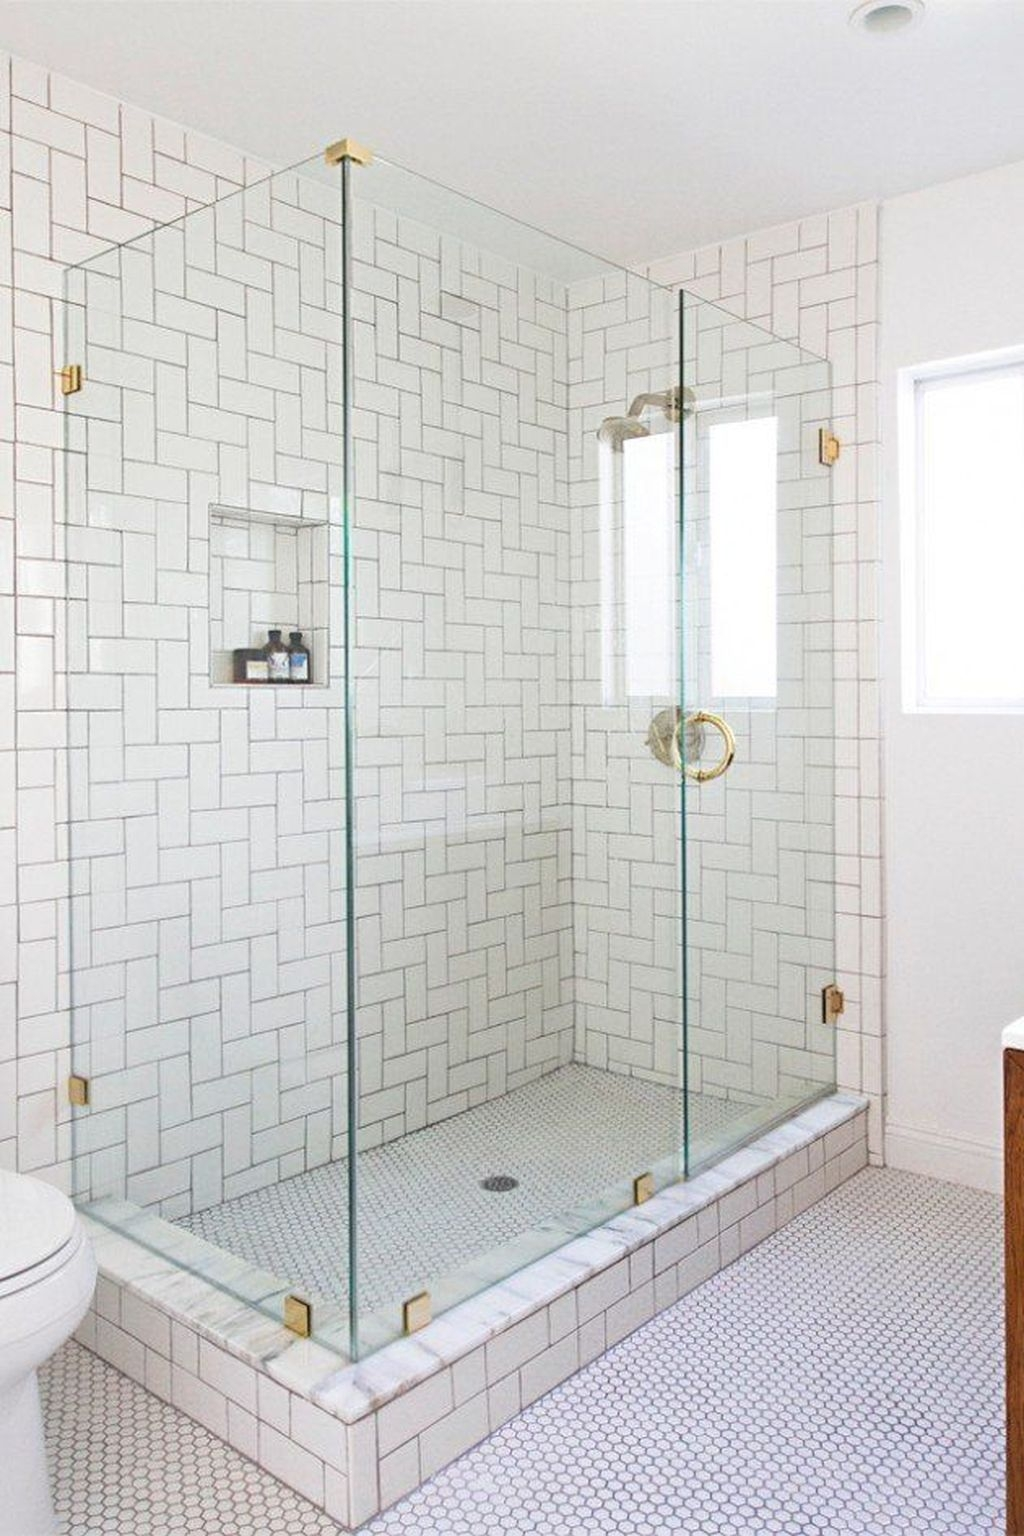 Catchy Subway Tiles Application Ideas For Bathroom34